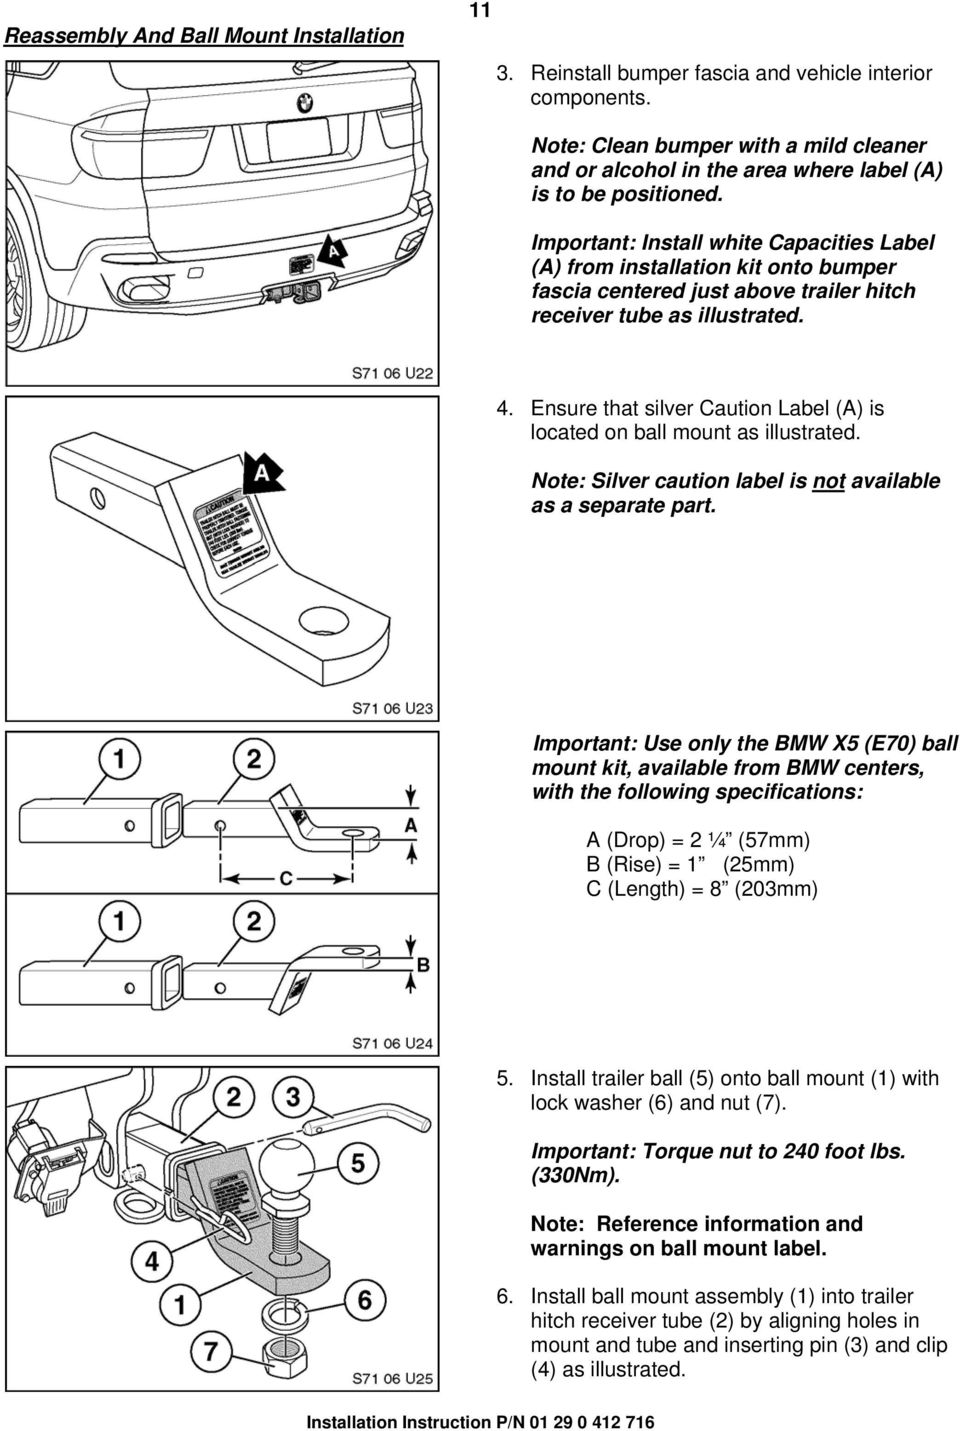 Installation Instructions Pdf How To Install A Trailer Wiring Harness On Volvo Xc90 Car Mods Important White Capacities Label From Kit Onto Bumper Fascia Centered